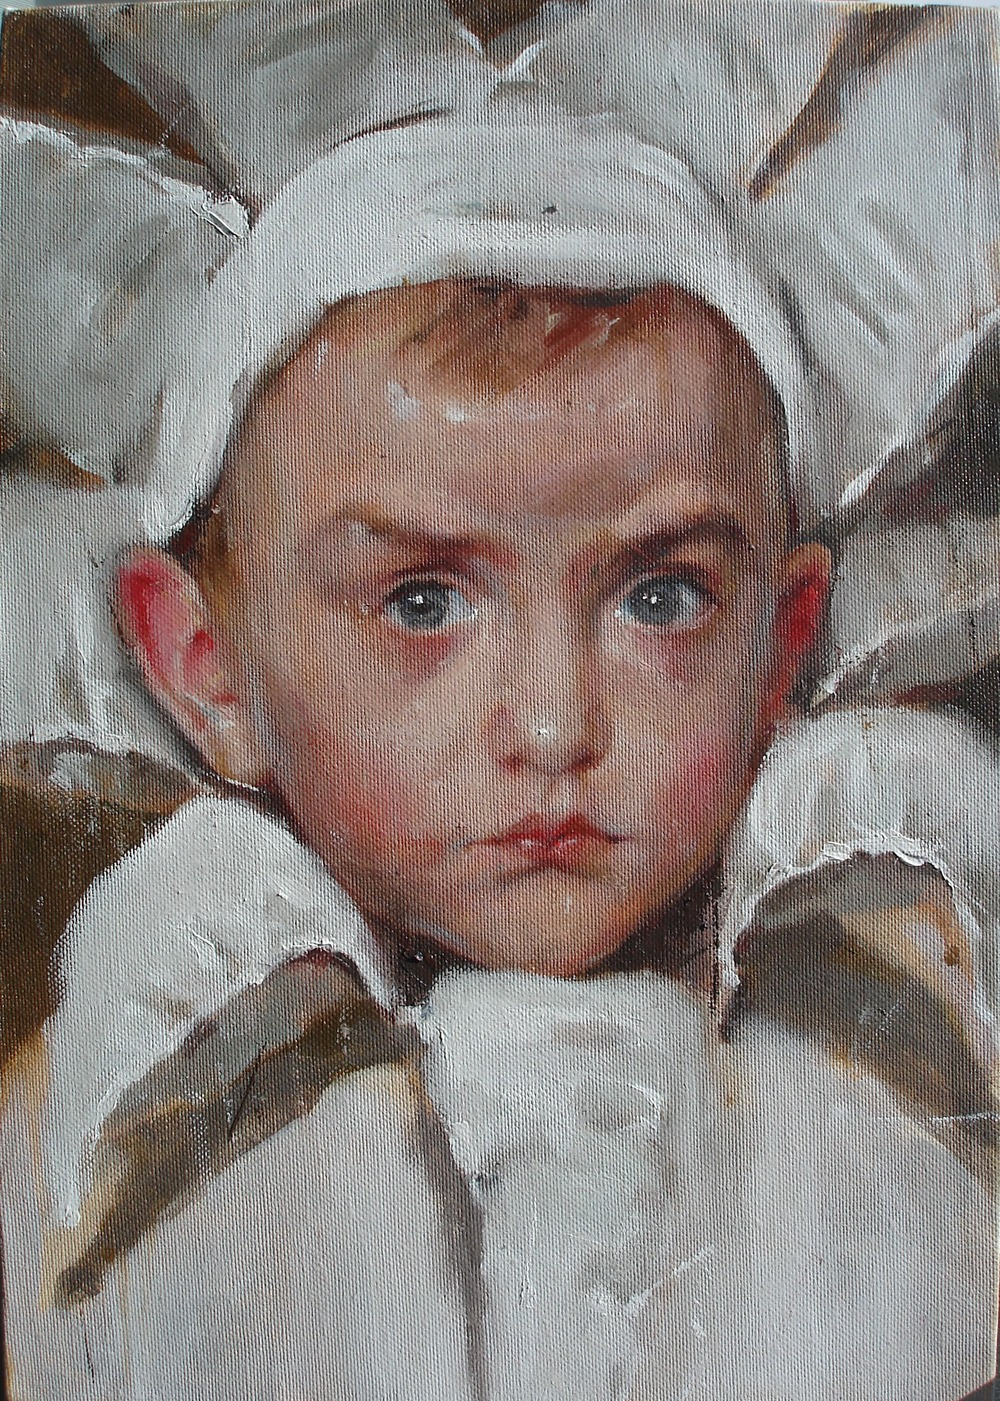 """White Ray"" (2012)  Oil on canvas  11.8 x 9.85 in"